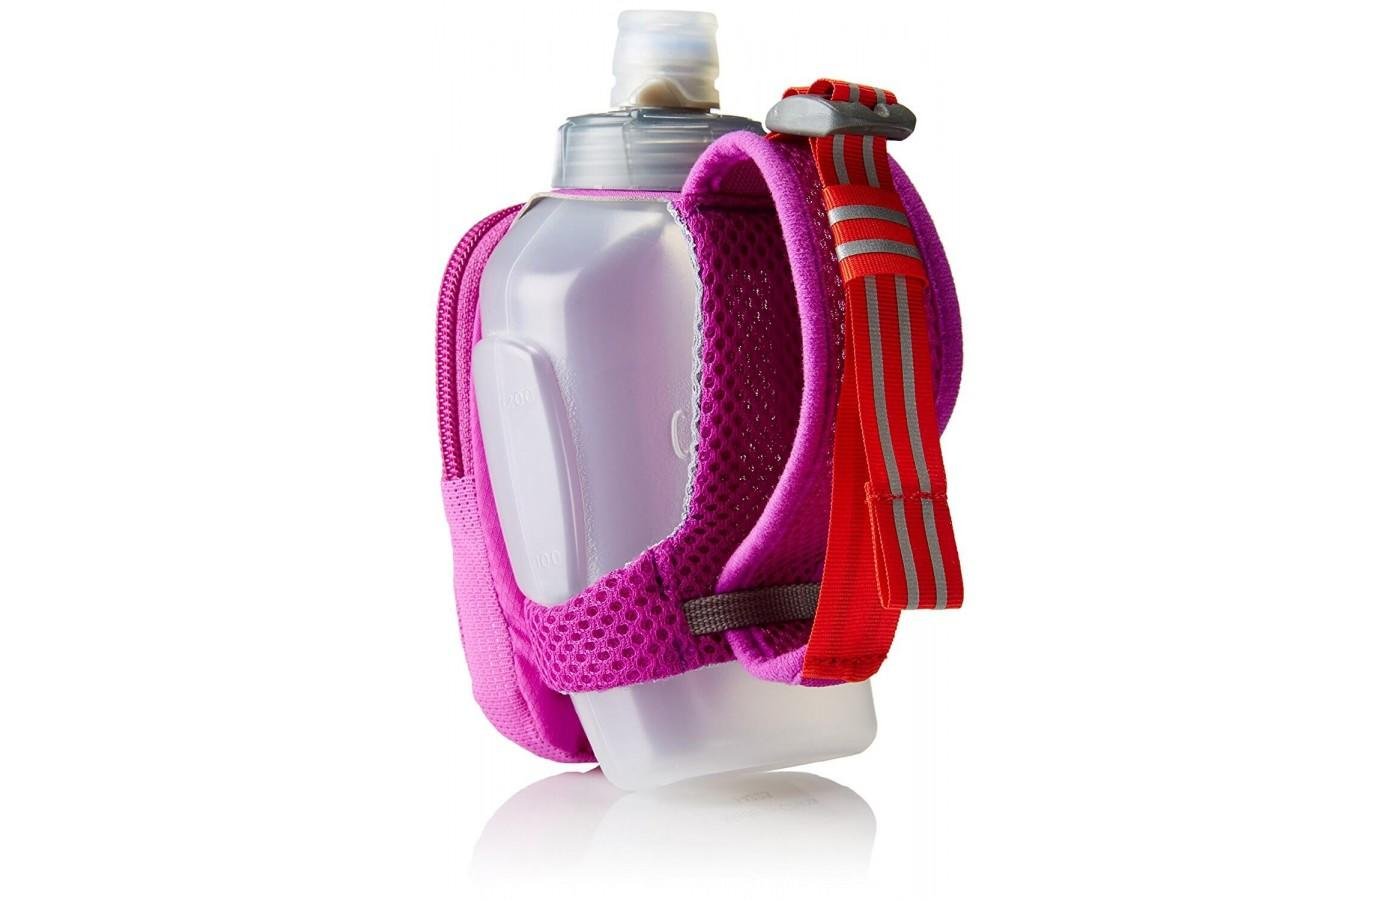 The Camelbak Arc Quick Grip Handheld Water Bottle features TruTaste technology